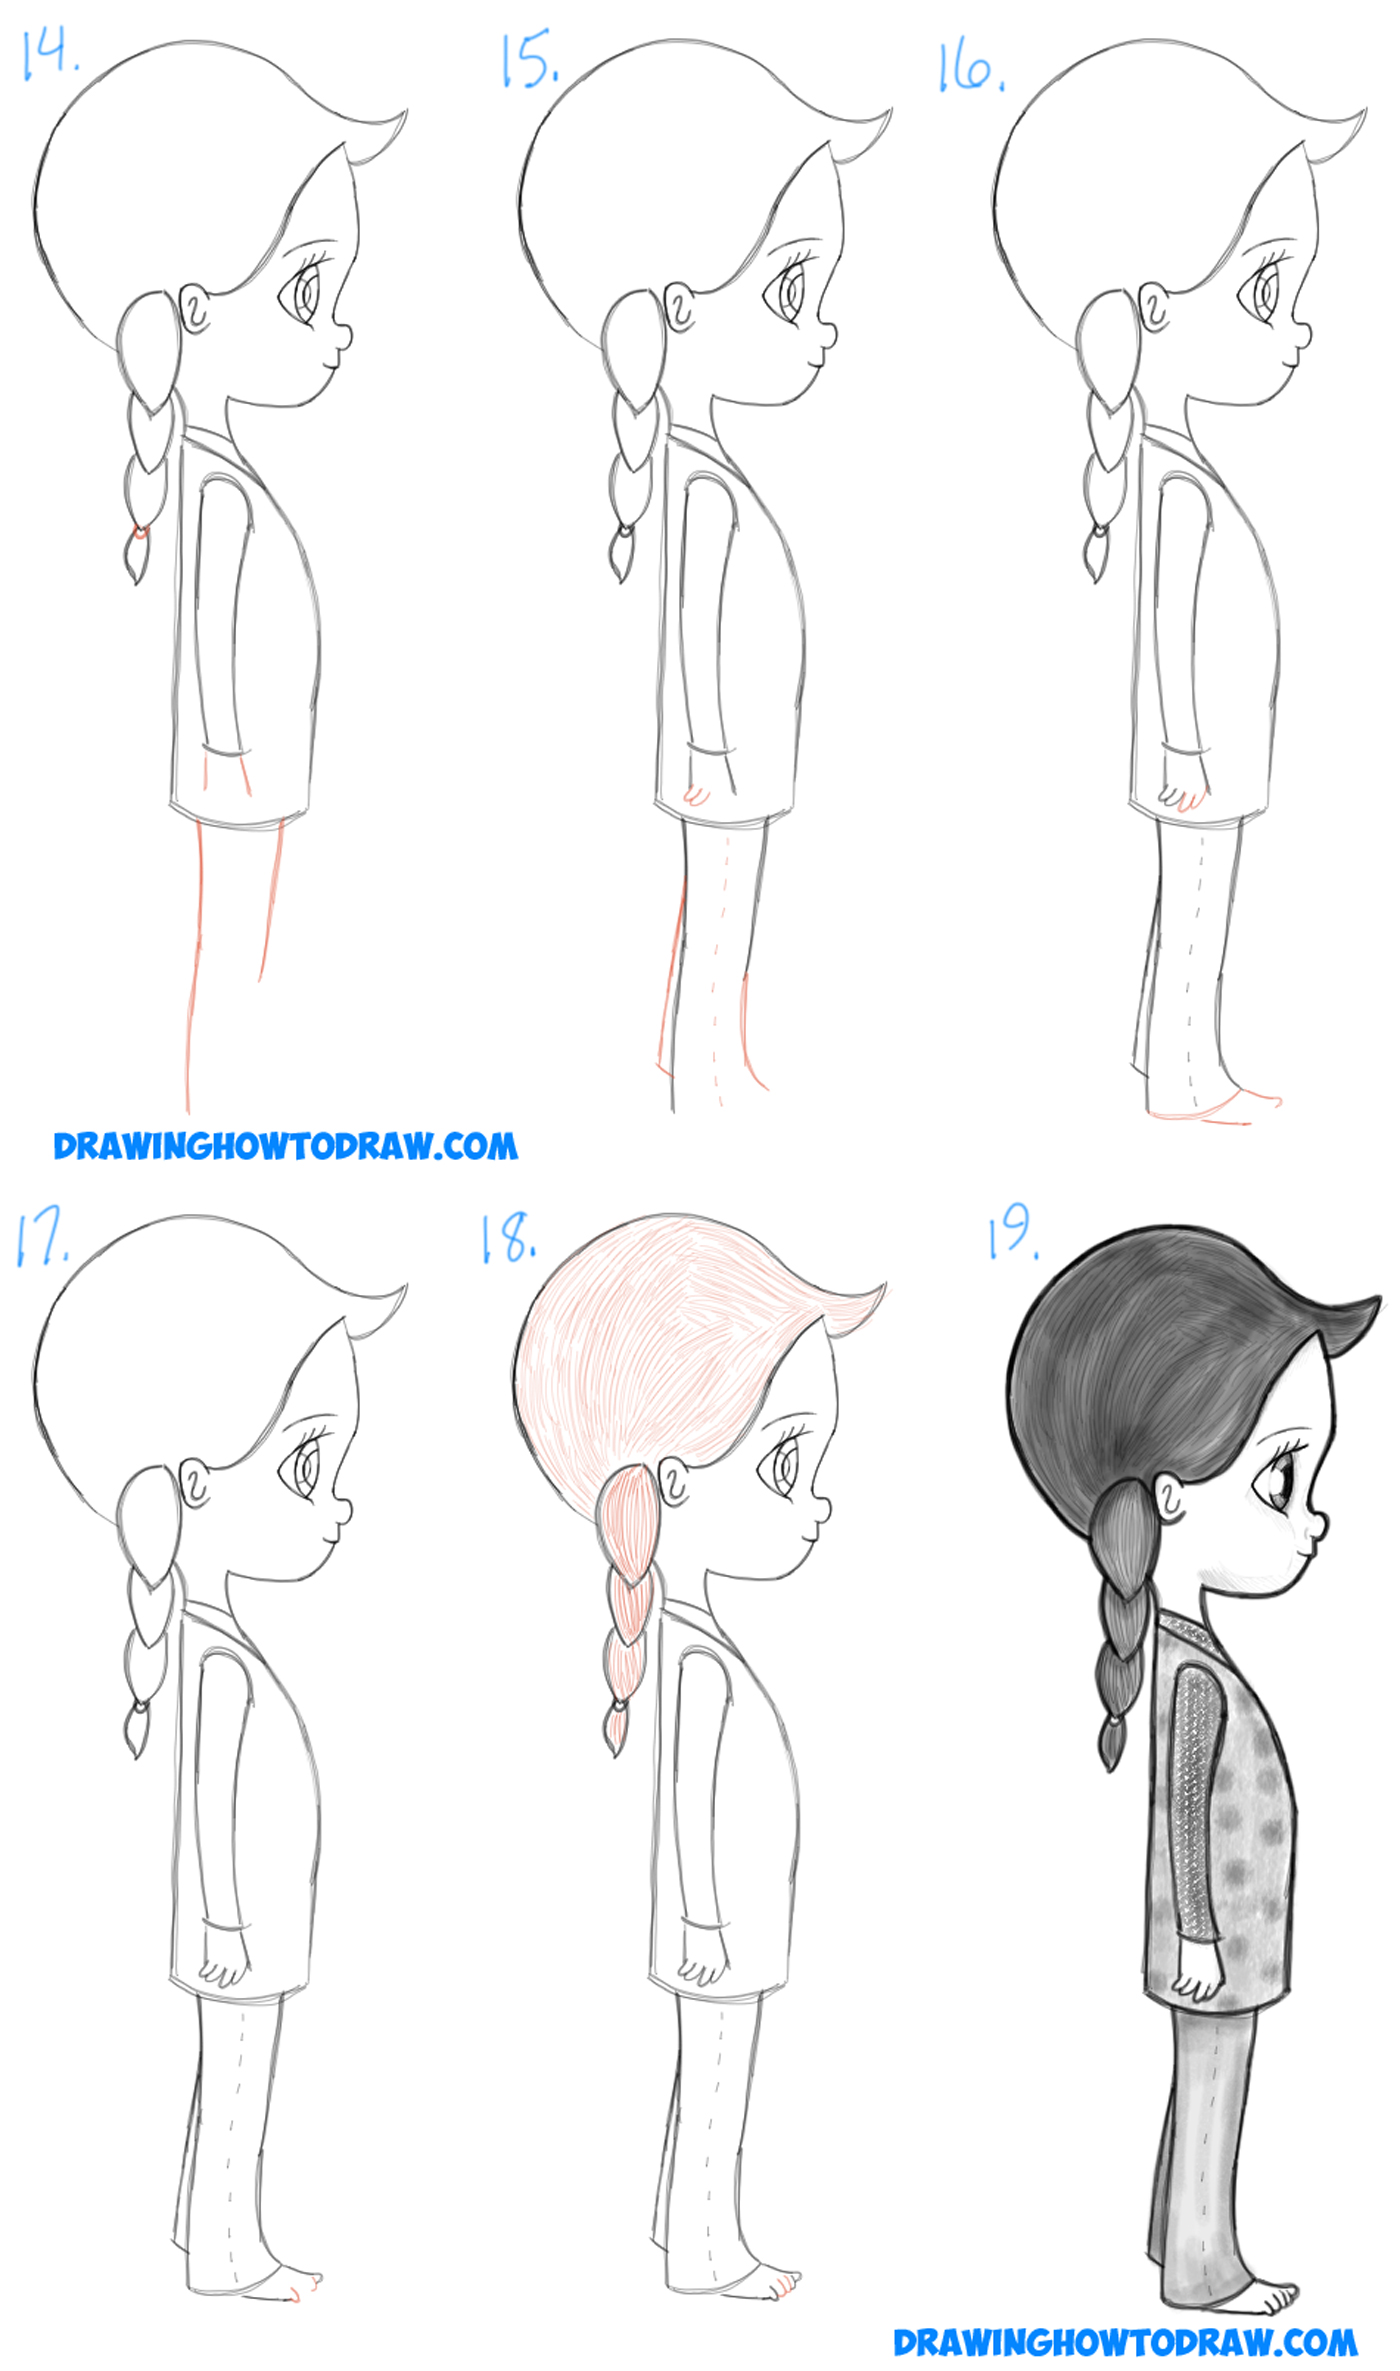 Learn How To Draw A Cute Chibi Manga Anime Girl From The Side Profile